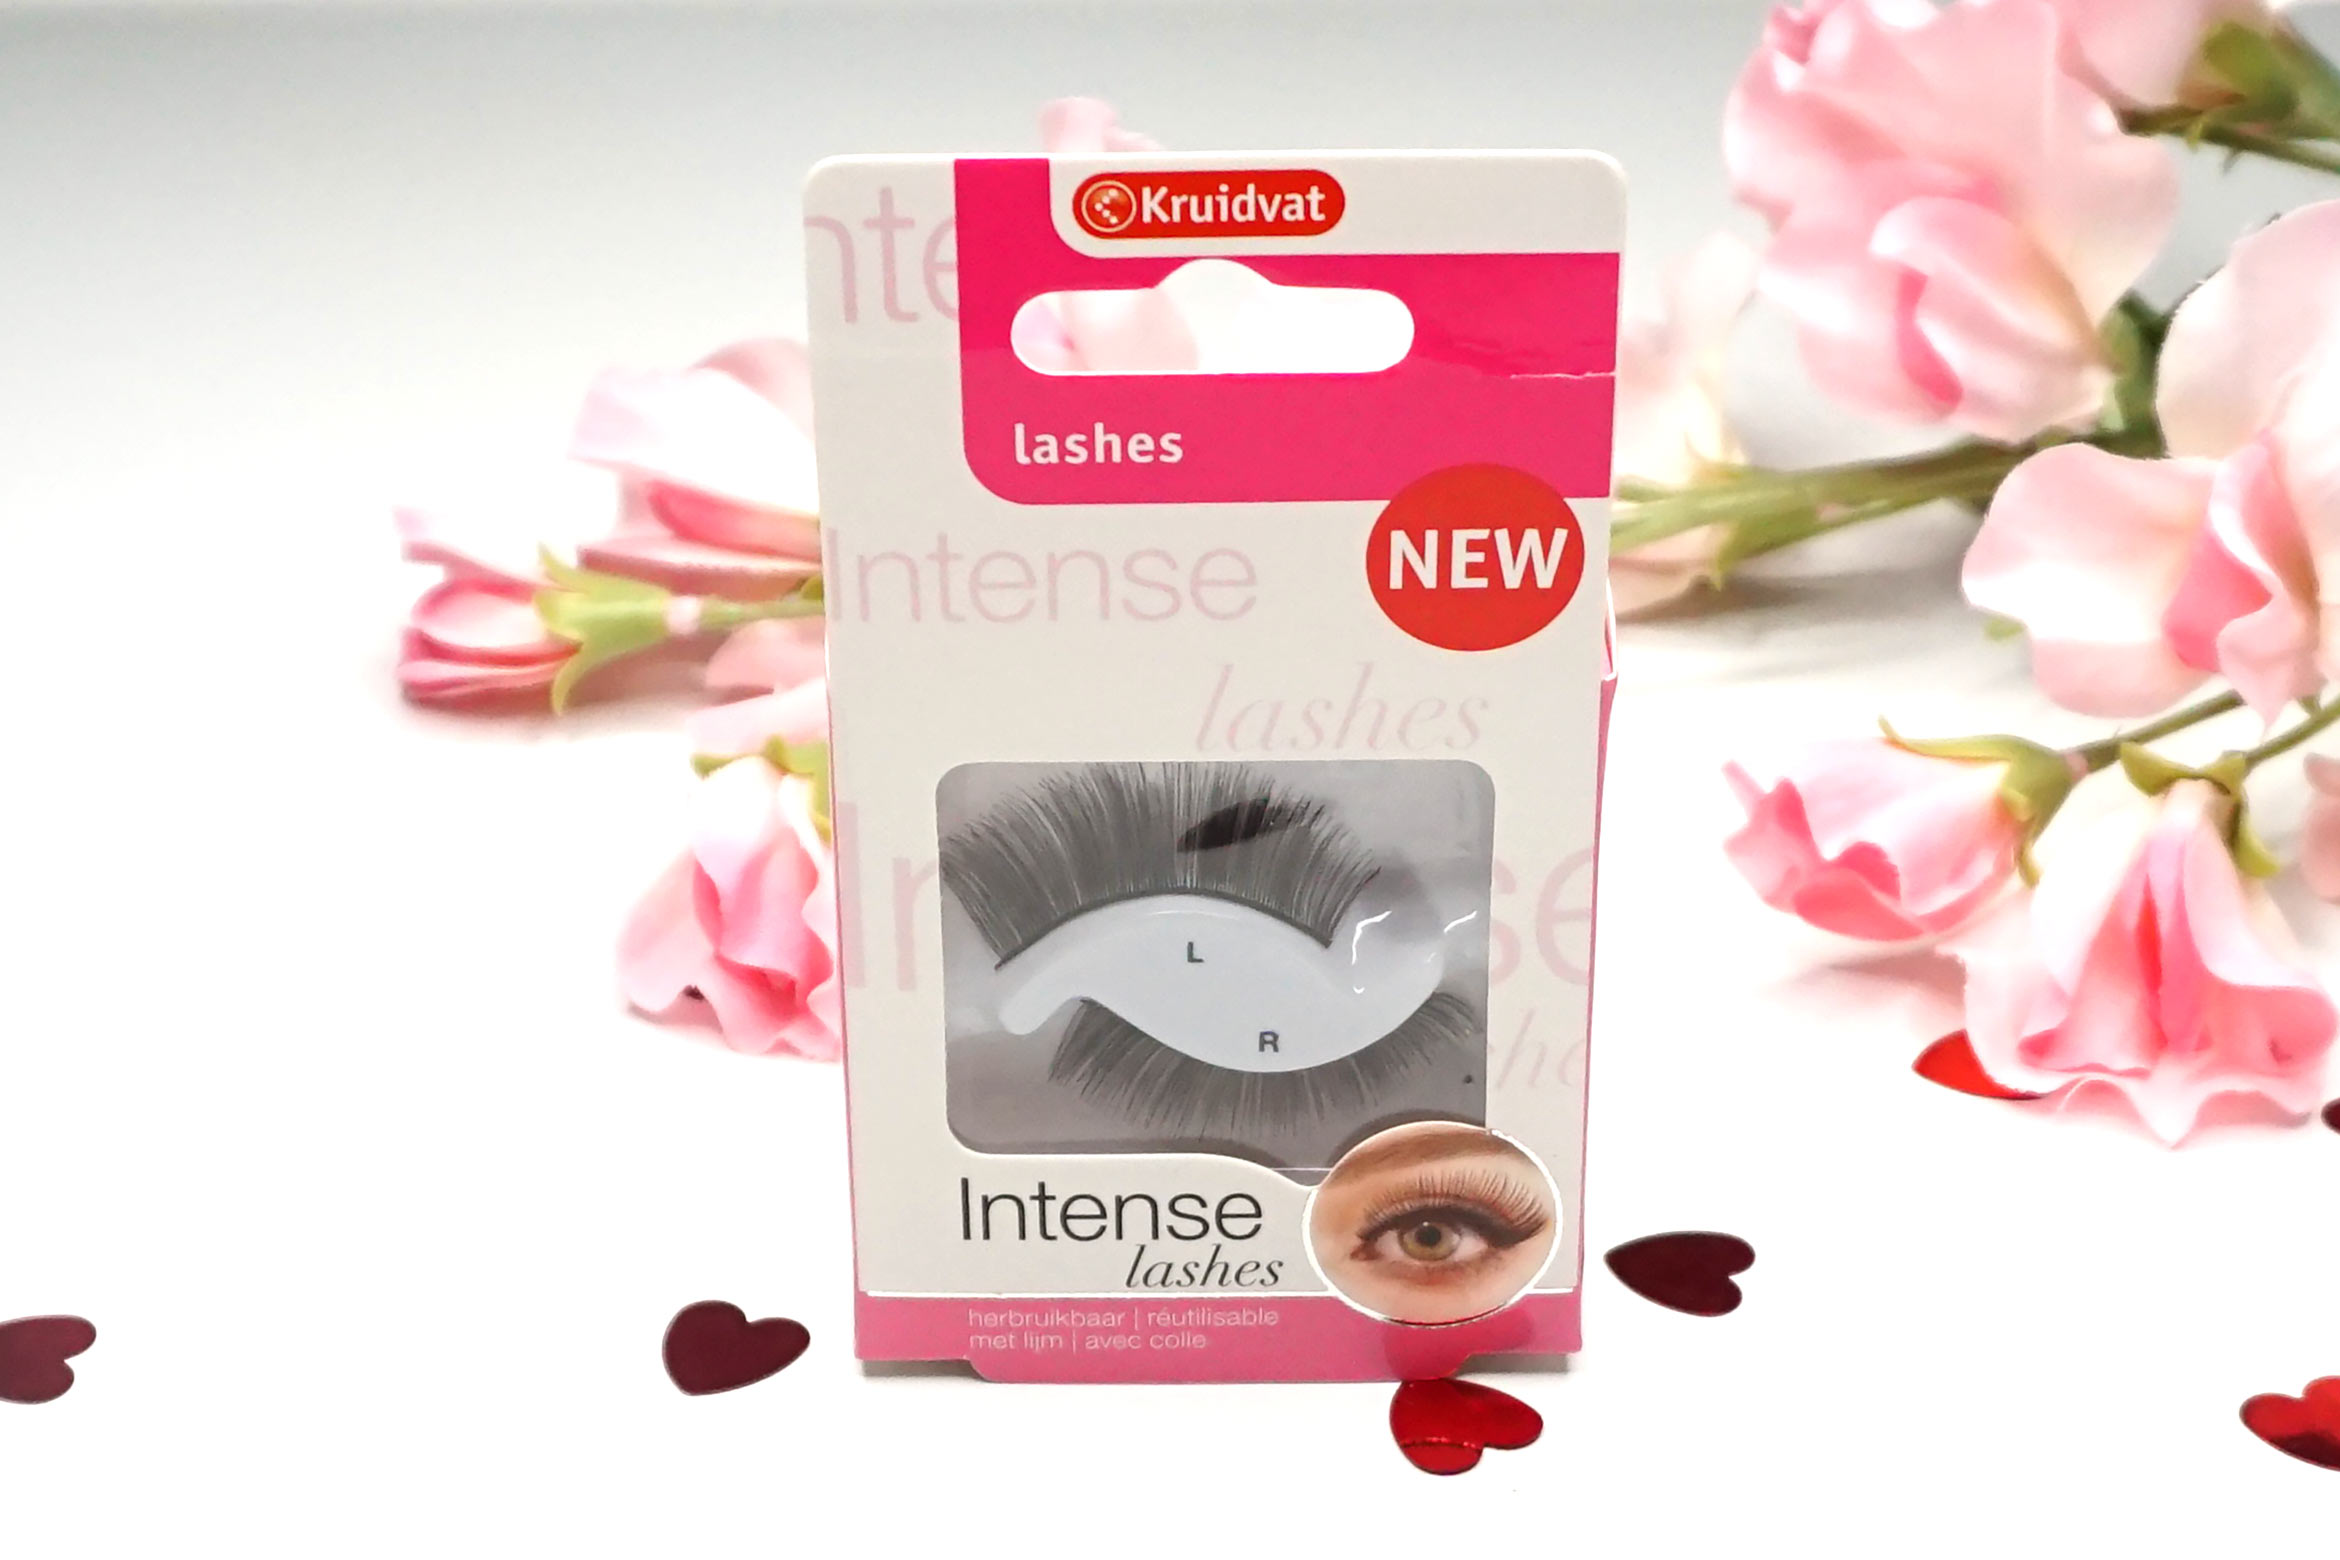 kruidvat-intense-lashes-review